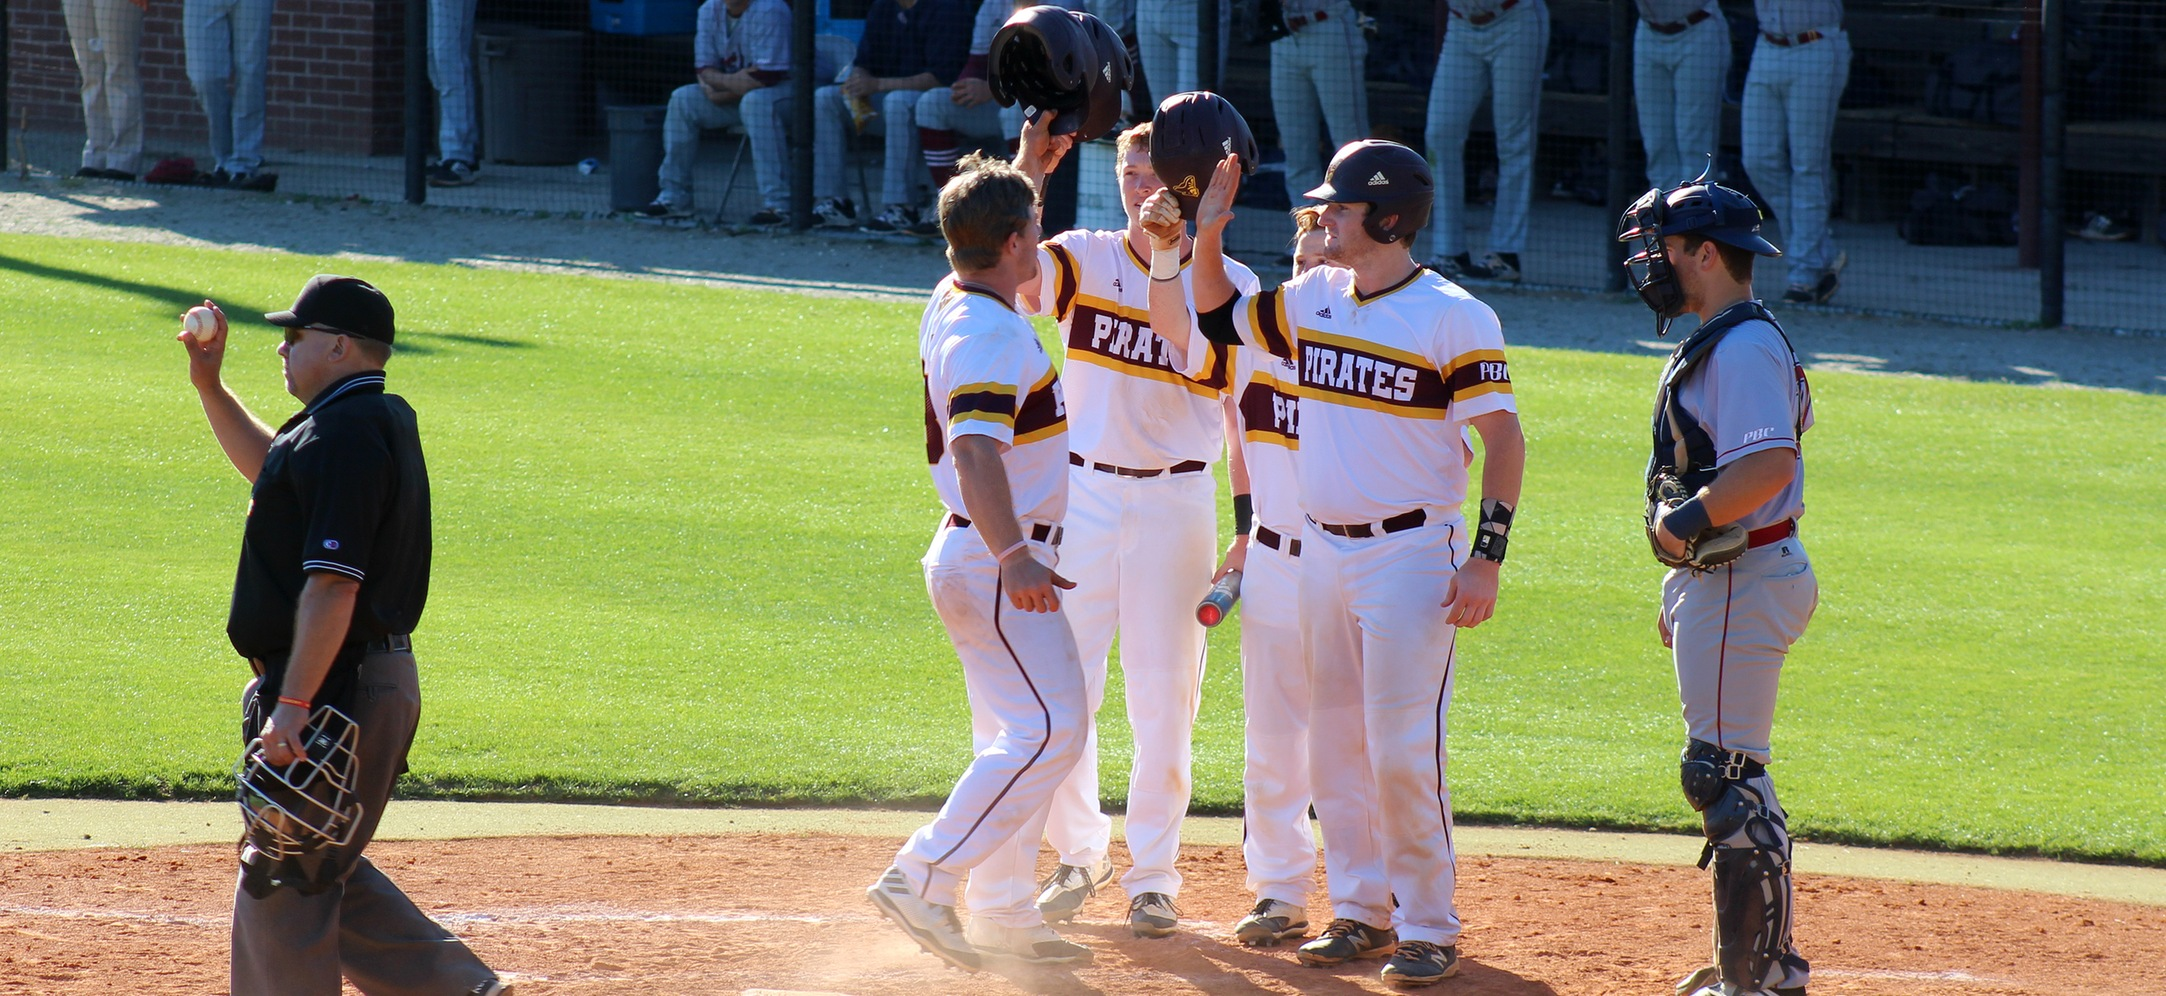 No. 9 USC Aiken Spoils Pirate Comeback, Takes Game One Of PBC Series, 9-7